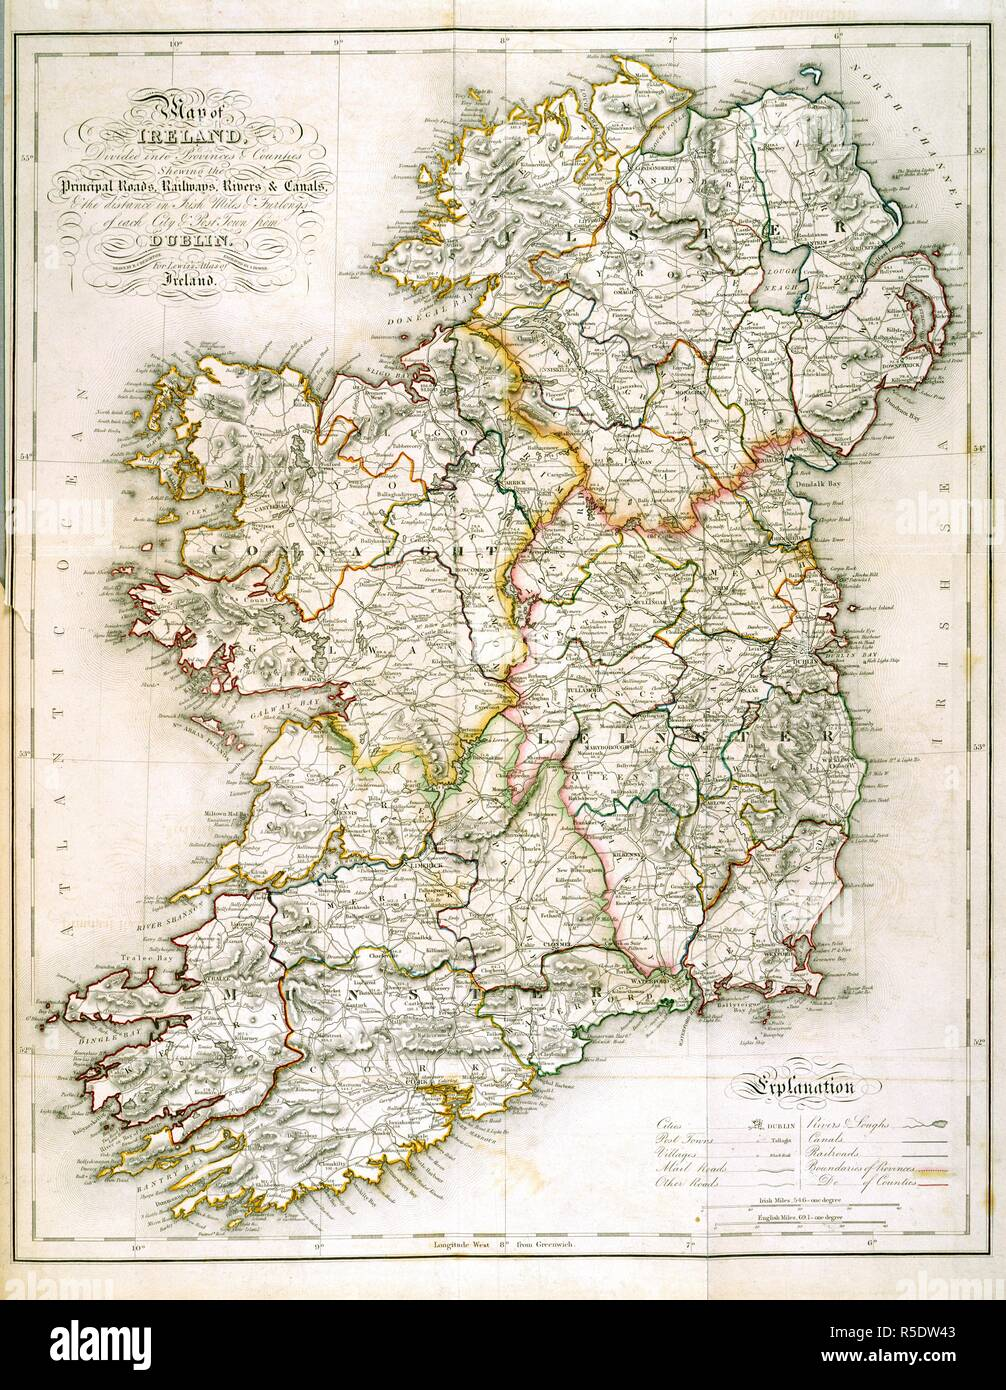 Map Of Ireland With Counties And Provinces.Ireland Lewis S Atlas Comprising The Counties Of Ireland 1840